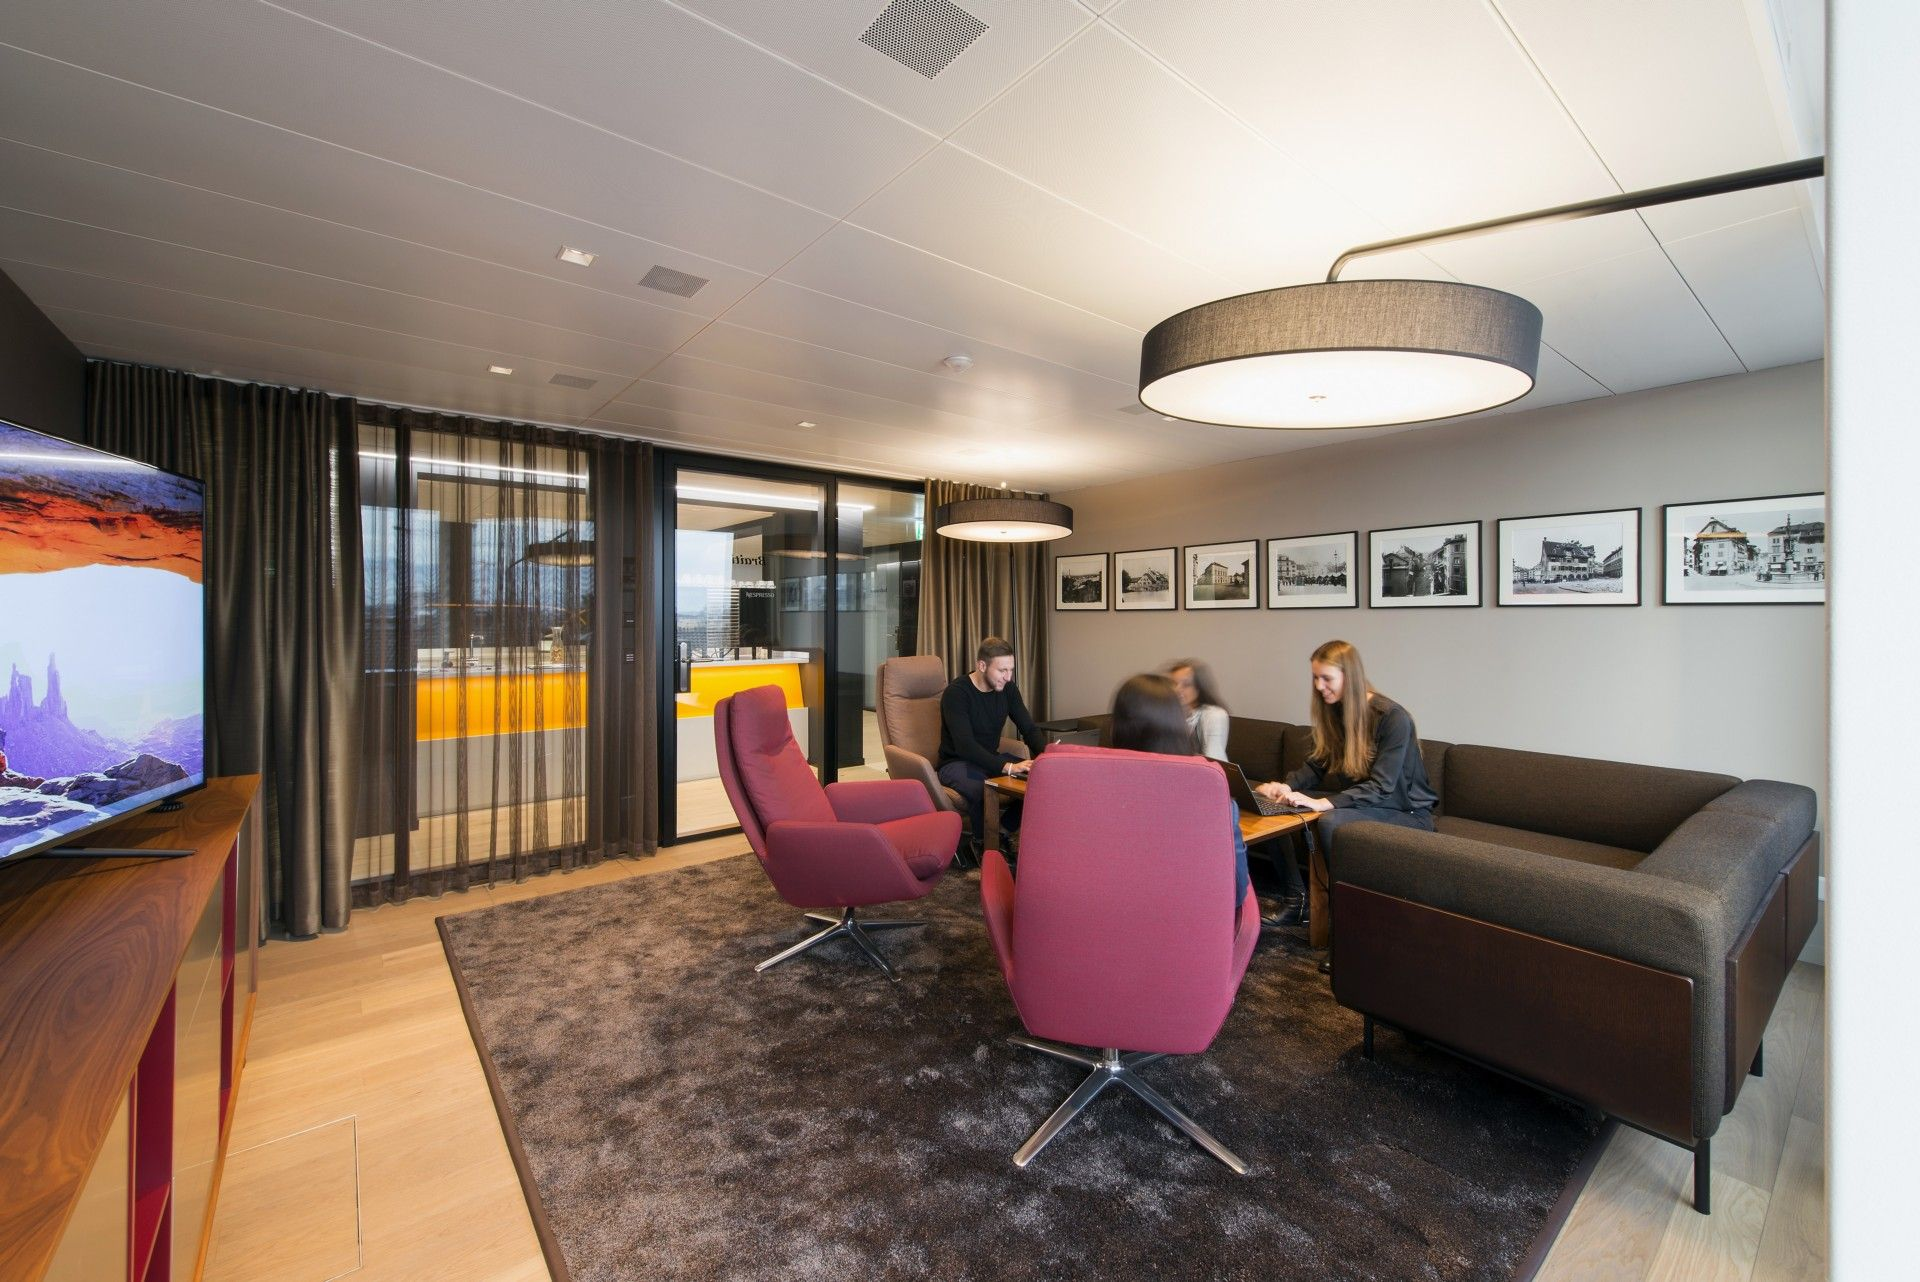 new office designs. Swiss Architectural Studio Evolution Design Has Designed The New Offices Of Insurance And Consultancy Giant PwC In Basel. This Jewel Is Built On Office Designs F